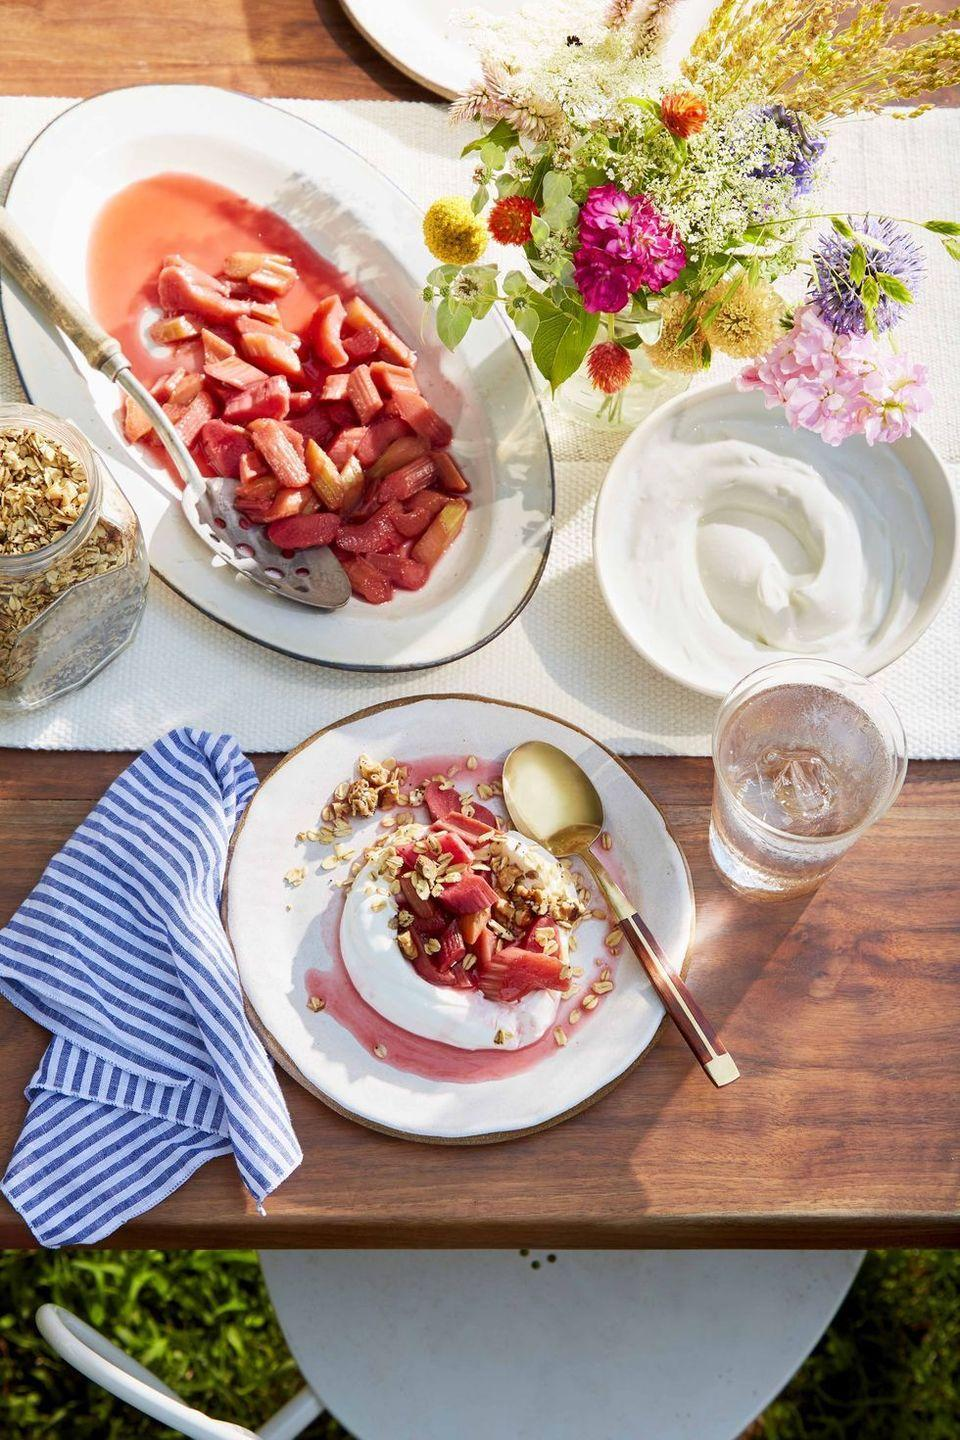 """<p>Fresh rhubarb, poached in maple syrup, makes a delicious and elegant topping for your favorite breakfast yogurt. Add a little <a href=""""https://www.countryliving.com/food-drinks/a32353912/toasted-many-seed-granola/"""" rel=""""nofollow noopener"""" target=""""_blank"""" data-ylk=""""slk:homemade granola"""" class=""""link rapid-noclick-resp"""">homemade granola</a> and it's *chef's kiss*.</p><p><strong><a href=""""https://www.countryliving.com/food-drinks/a32353901/poached-rhubarb-with-yogurt/"""" rel=""""nofollow noopener"""" target=""""_blank"""" data-ylk=""""slk:Get the recipe"""" class=""""link rapid-noclick-resp"""">Get the recipe</a>.</strong></p><p><a class=""""link rapid-noclick-resp"""" href=""""https://www.amazon.com/Cuisinart-733-30H-Classic-Stainless-2-Quart/dp/B00008CM6B/?tag=syn-yahoo-20&ascsubtag=%5Bartid%7C10050.g.1642%5Bsrc%7Cyahoo-us"""" rel=""""nofollow noopener"""" target=""""_blank"""" data-ylk=""""slk:SHOP SAUTÉ PANS"""">SHOP SAUTÉ PANS</a><br></p>"""